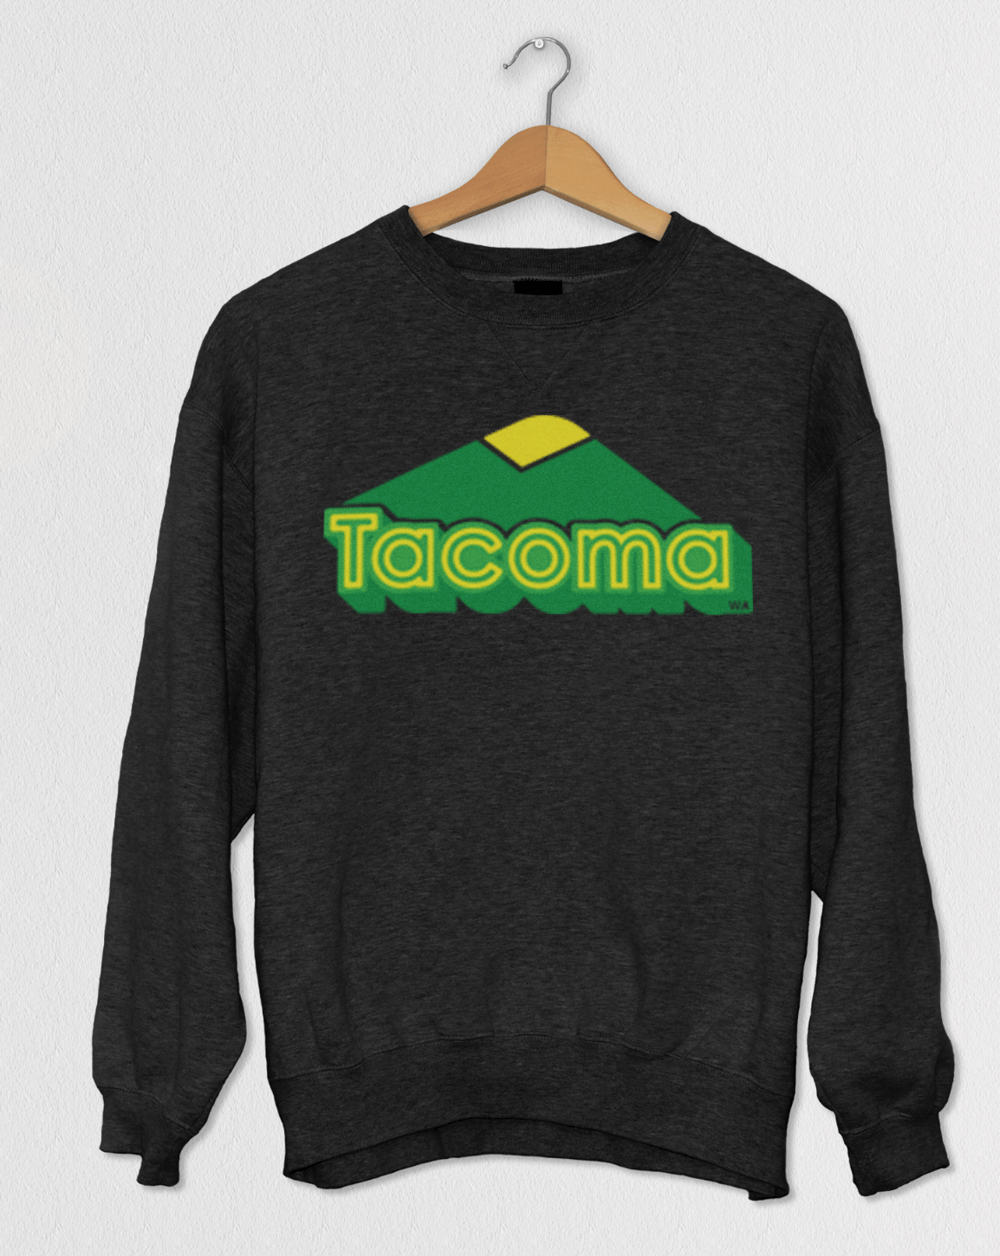 TACOMA - image 2 - student project